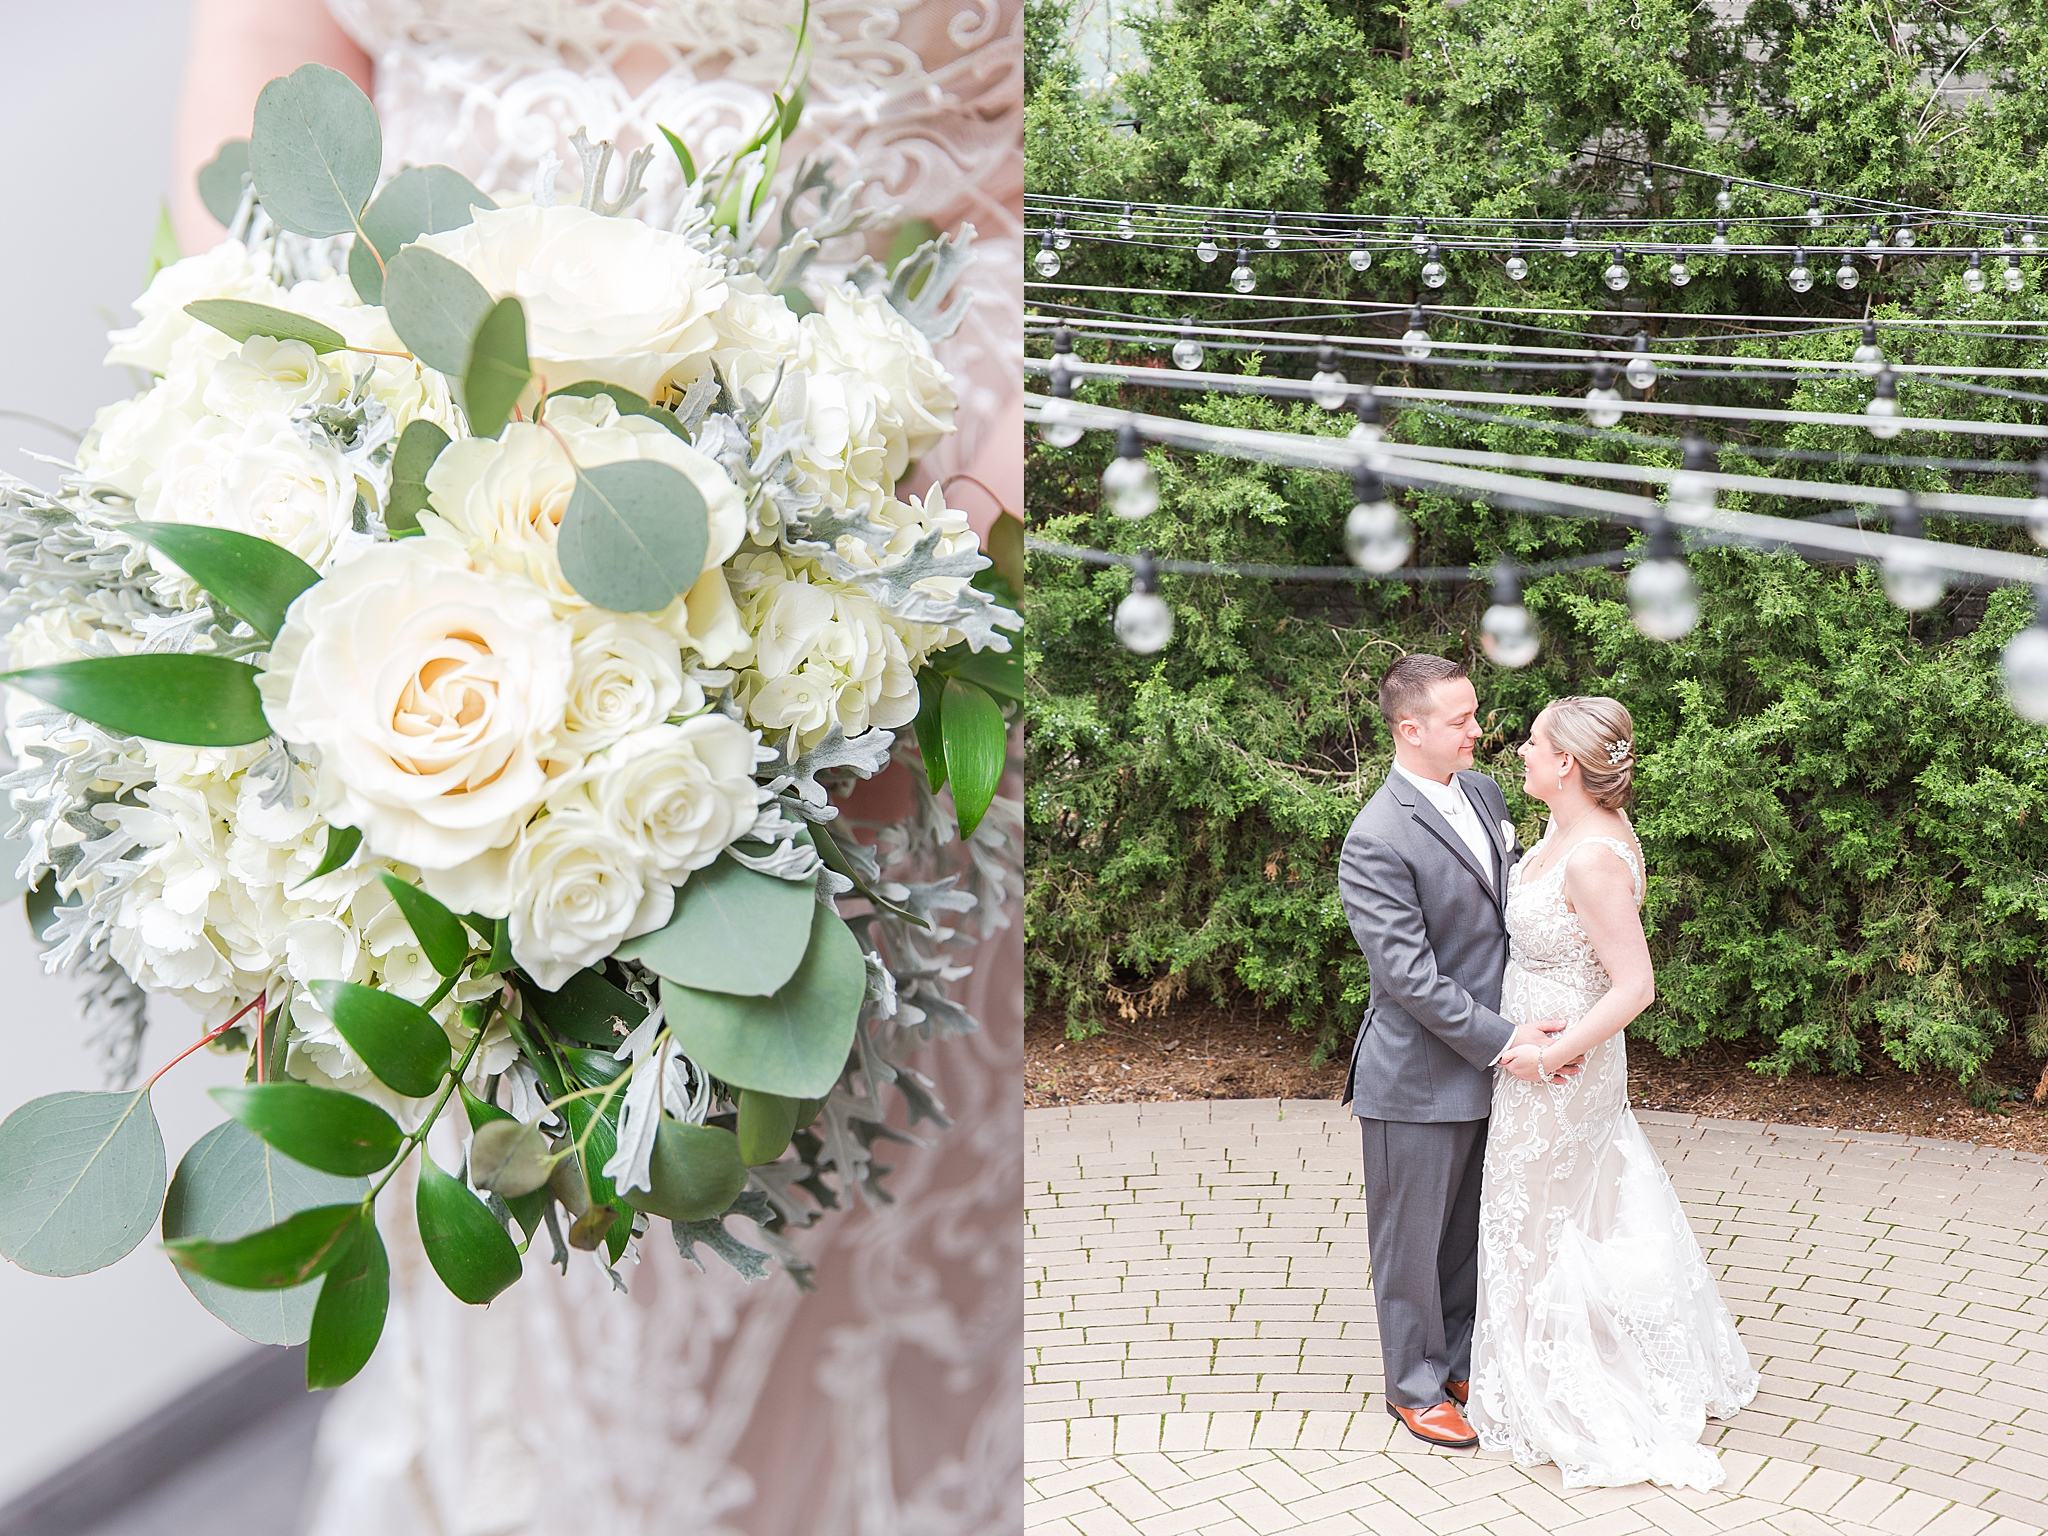 modern-romantic-wedding-photography-at-webers-in-ann-arbor-michigan-by-courtney-carolyn-photography_0029.jpg